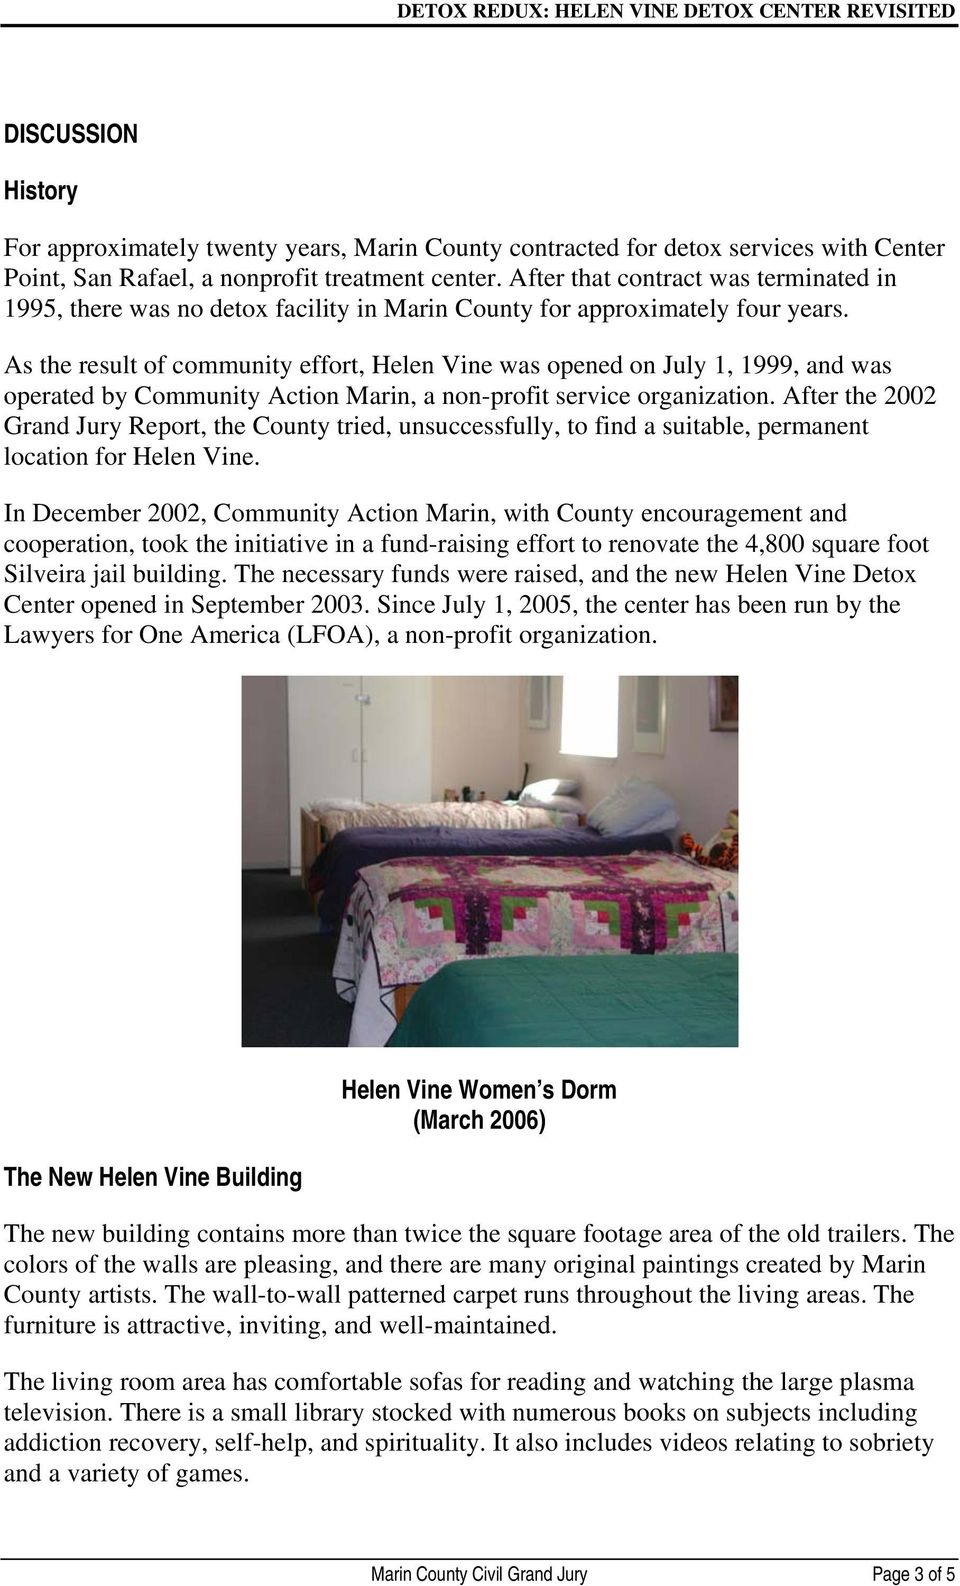 As the result of community effort, Helen Vine was opened on July 1, 1999, and was operated by Community Action Marin, a non-profit service organization.